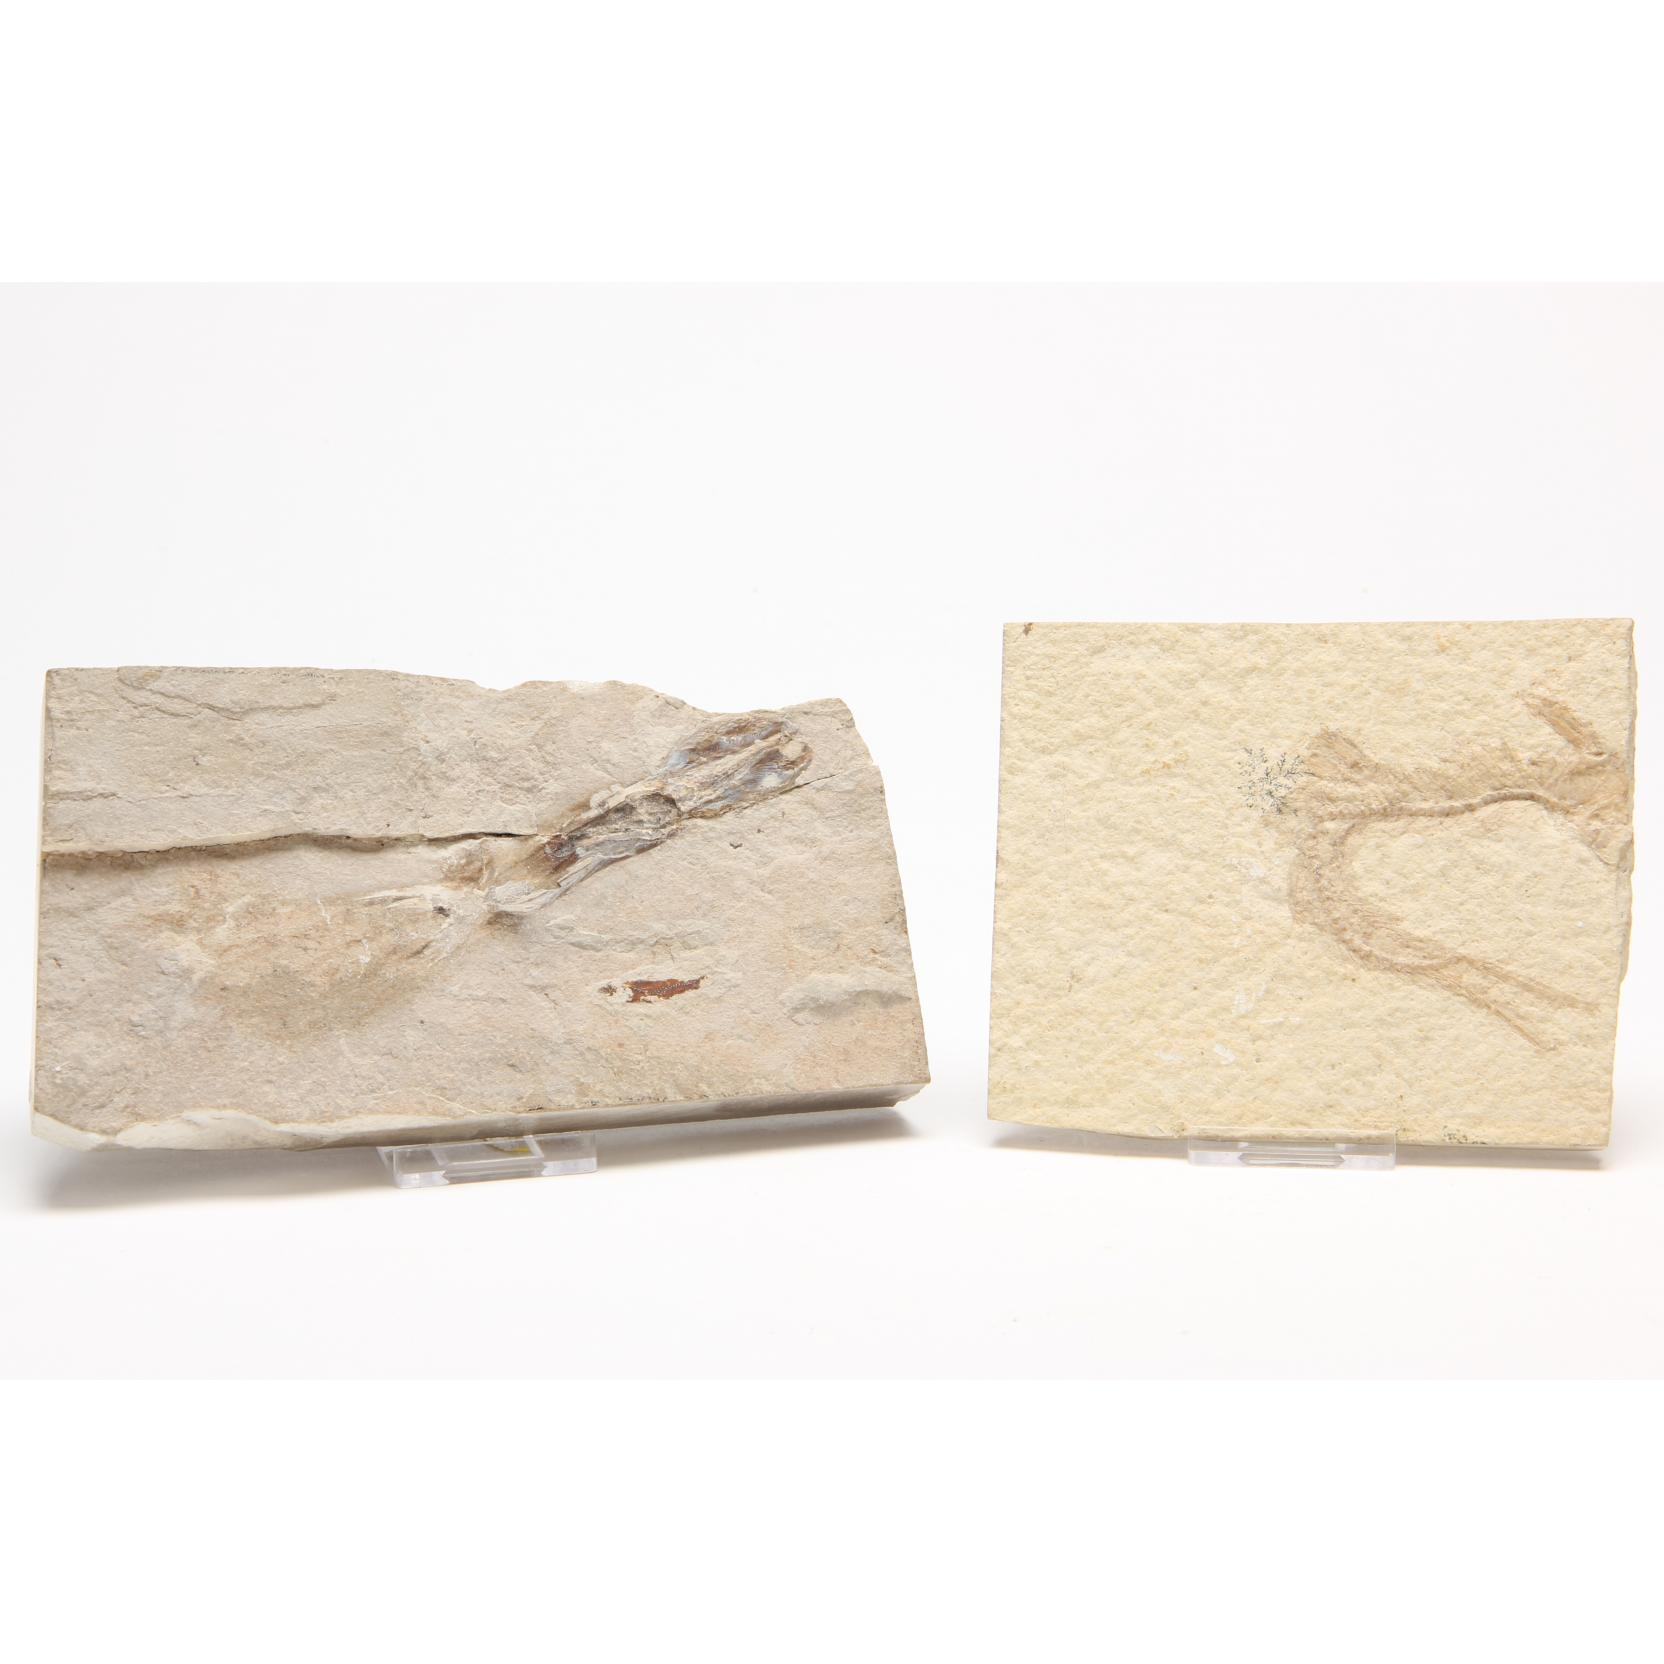 two-marine-fossils